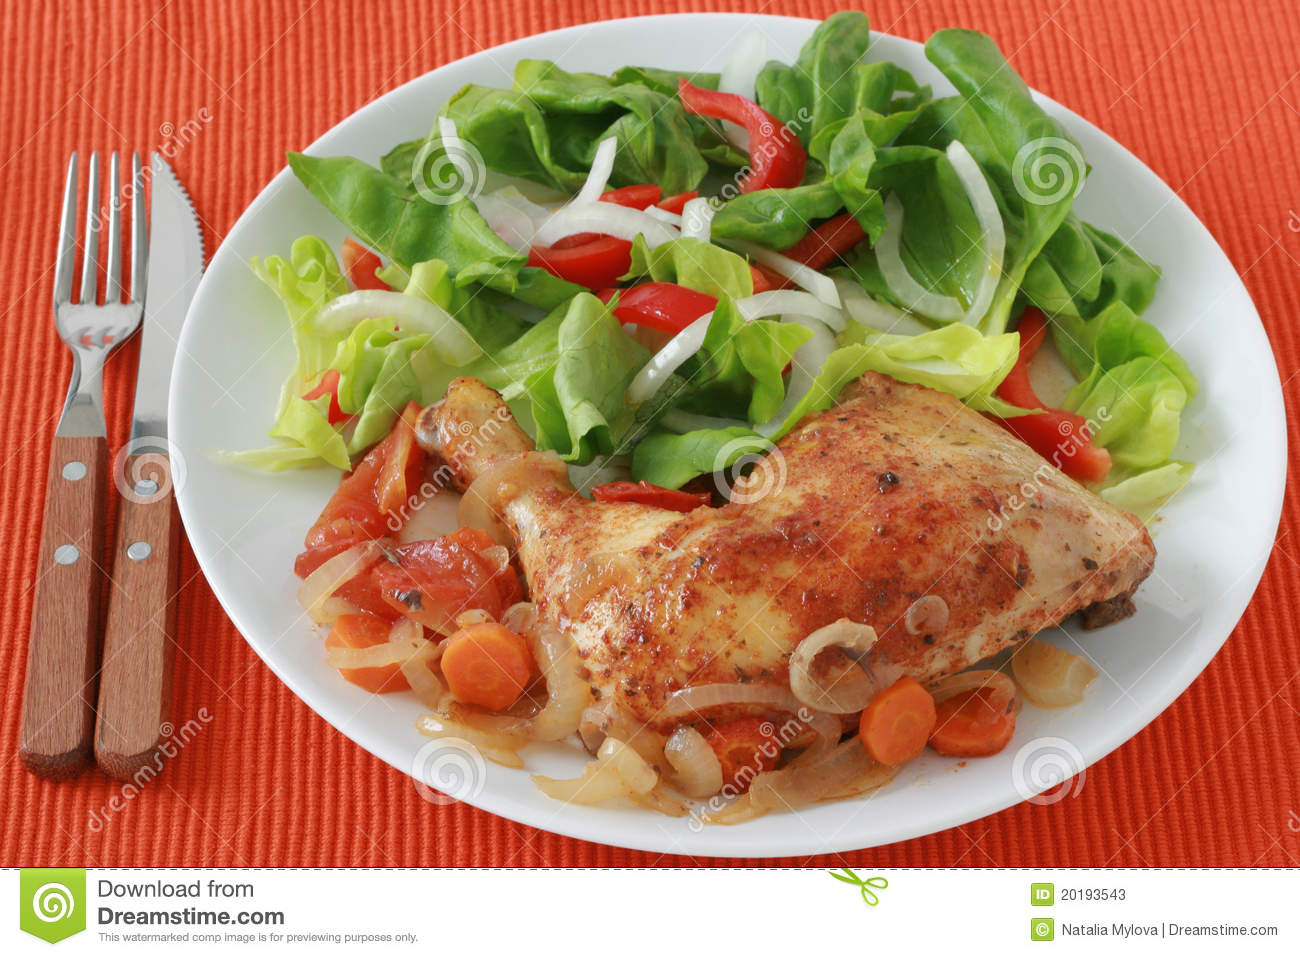 Fried Chicken With Salad Stock Photos - Image: 20193543